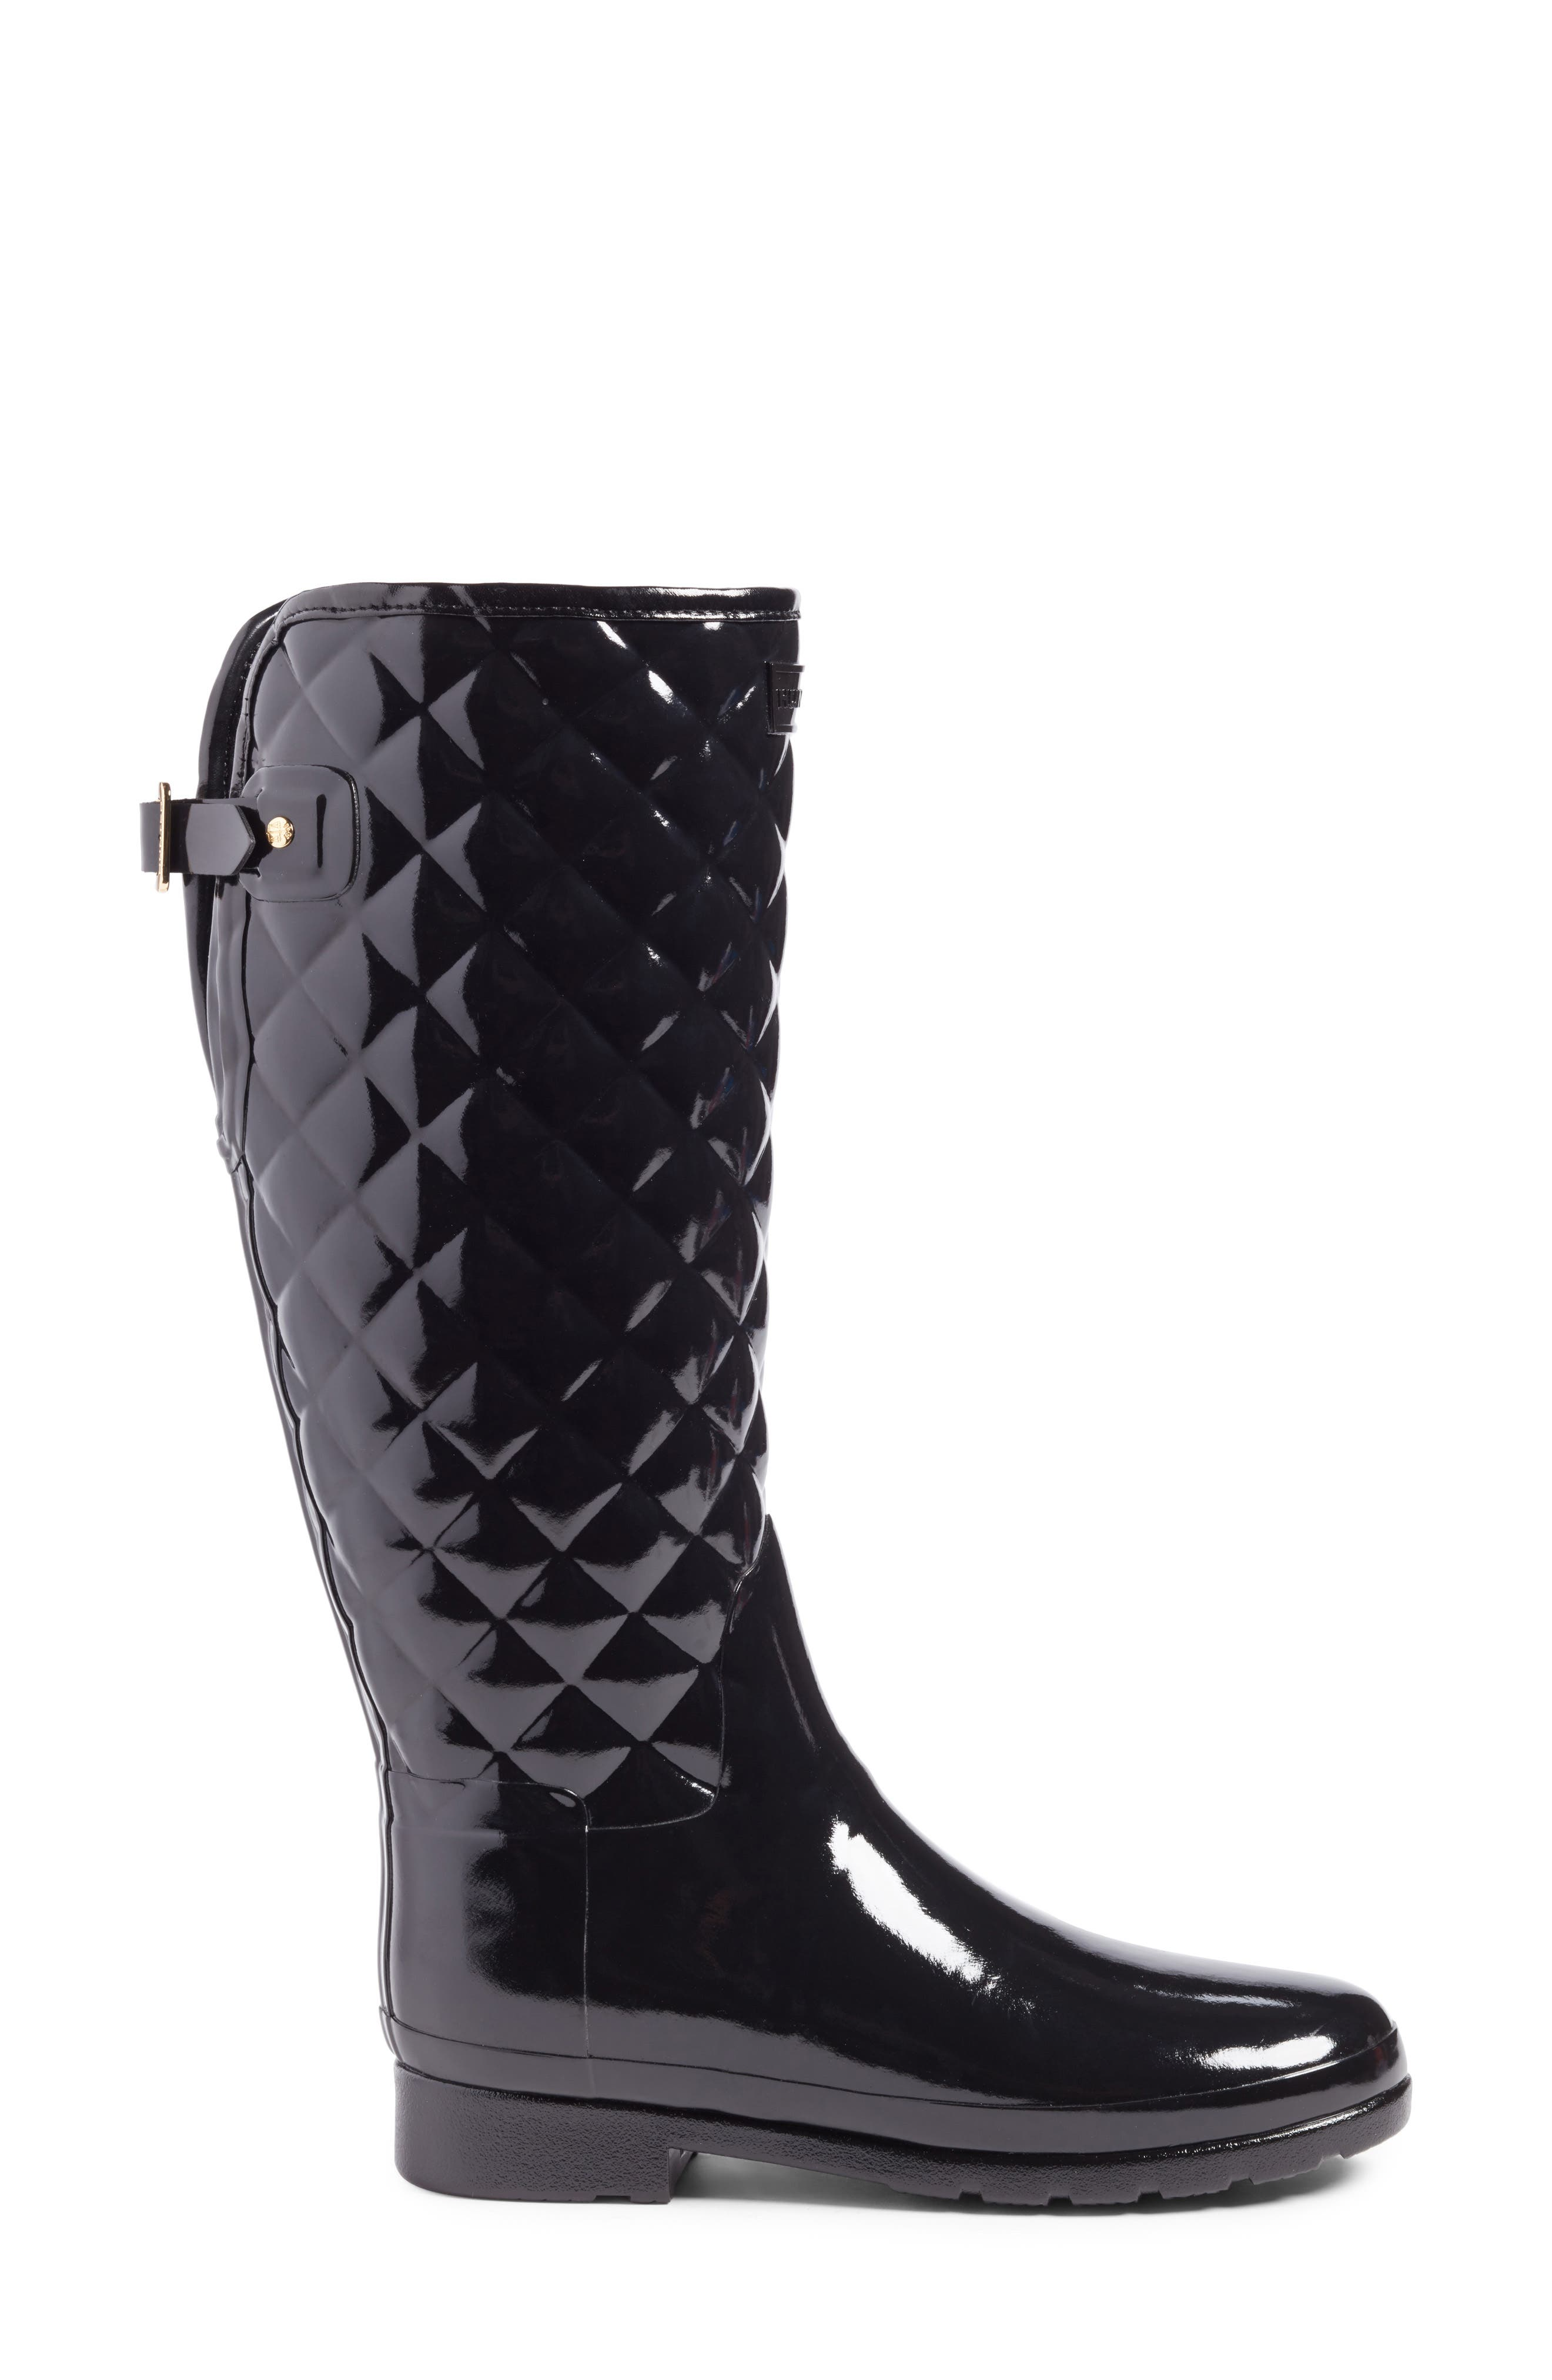 HUNTER, Original Refined High Gloss Quilted Waterproof Rain Boot, Alternate thumbnail 3, color, BLACK